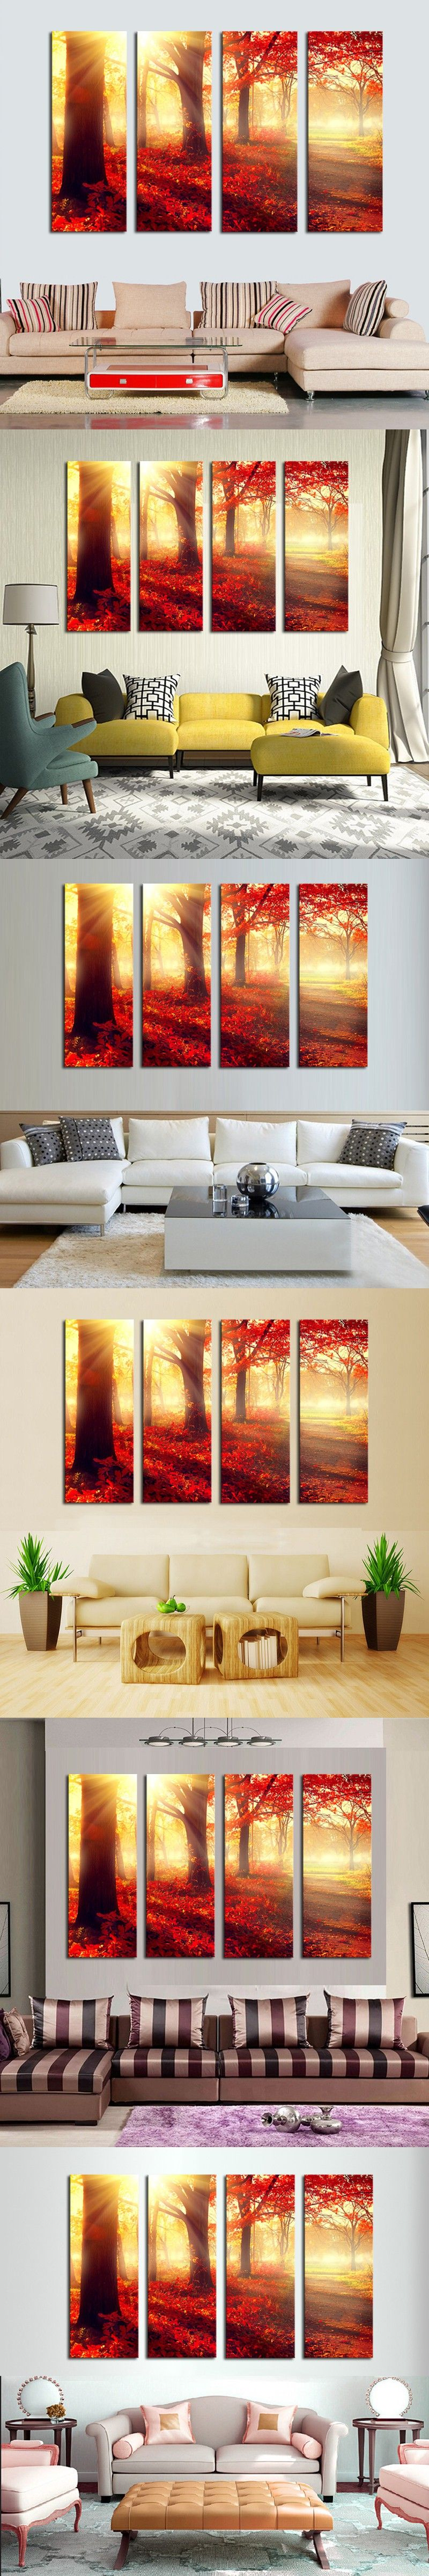 Red trees wall art picture modern home decoration living room or